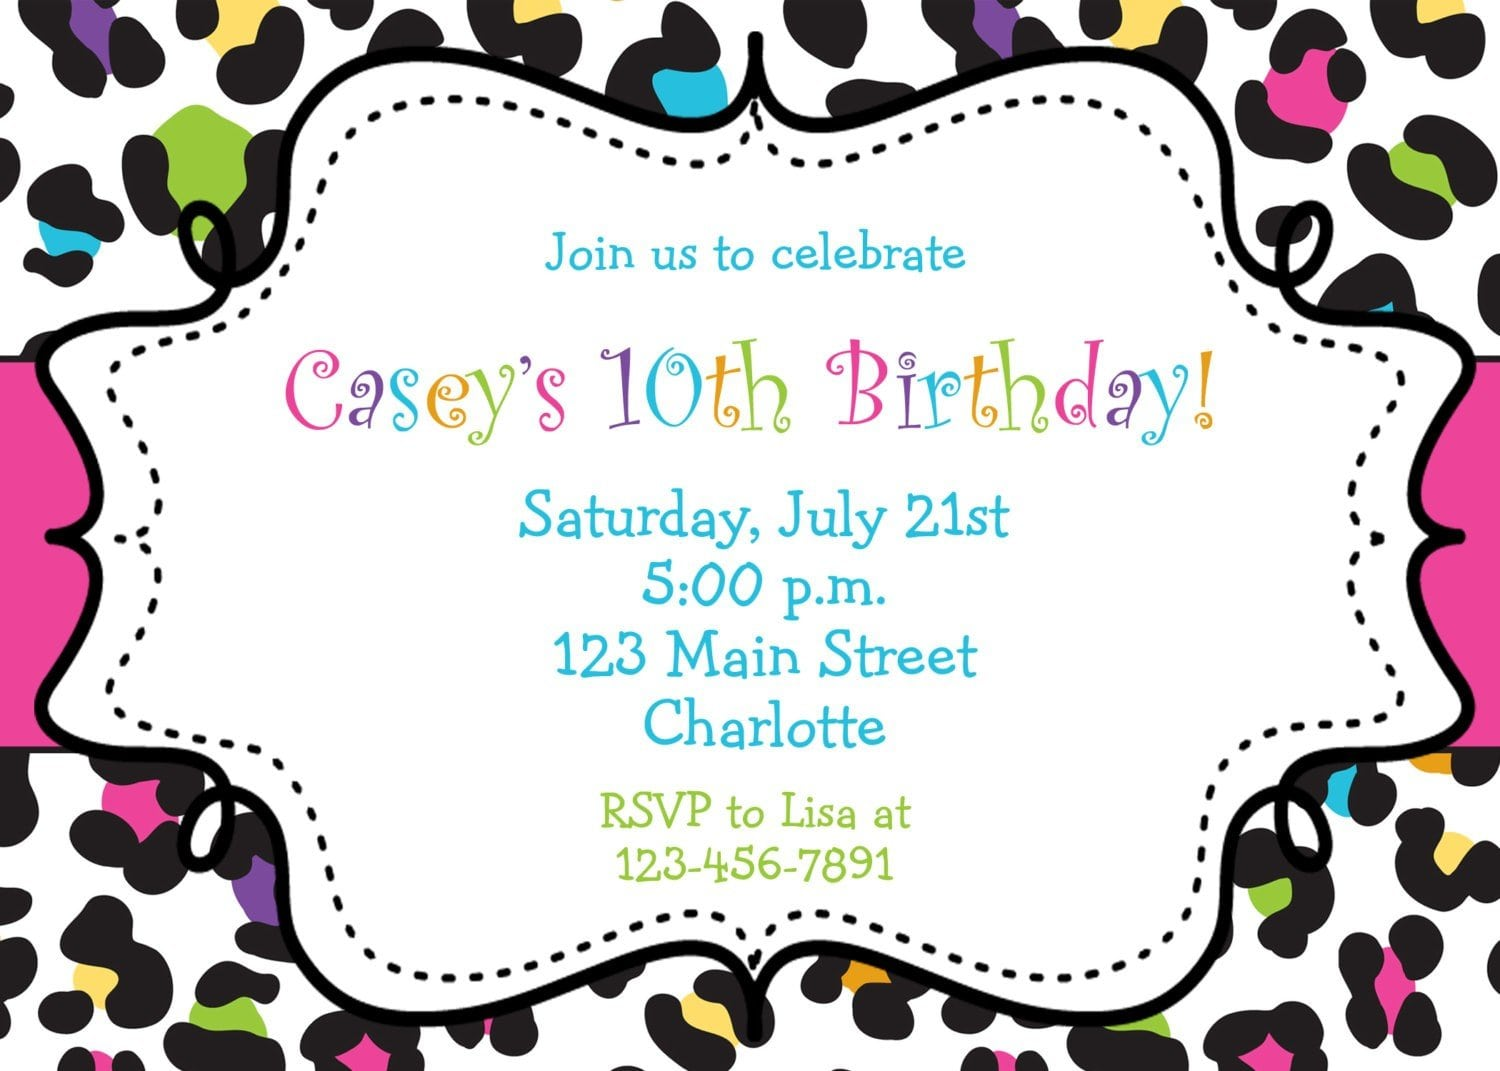 birthday party templatesrelated to Free Printable Birthday Party Invitations For Tween Girls nFuTWLSQ